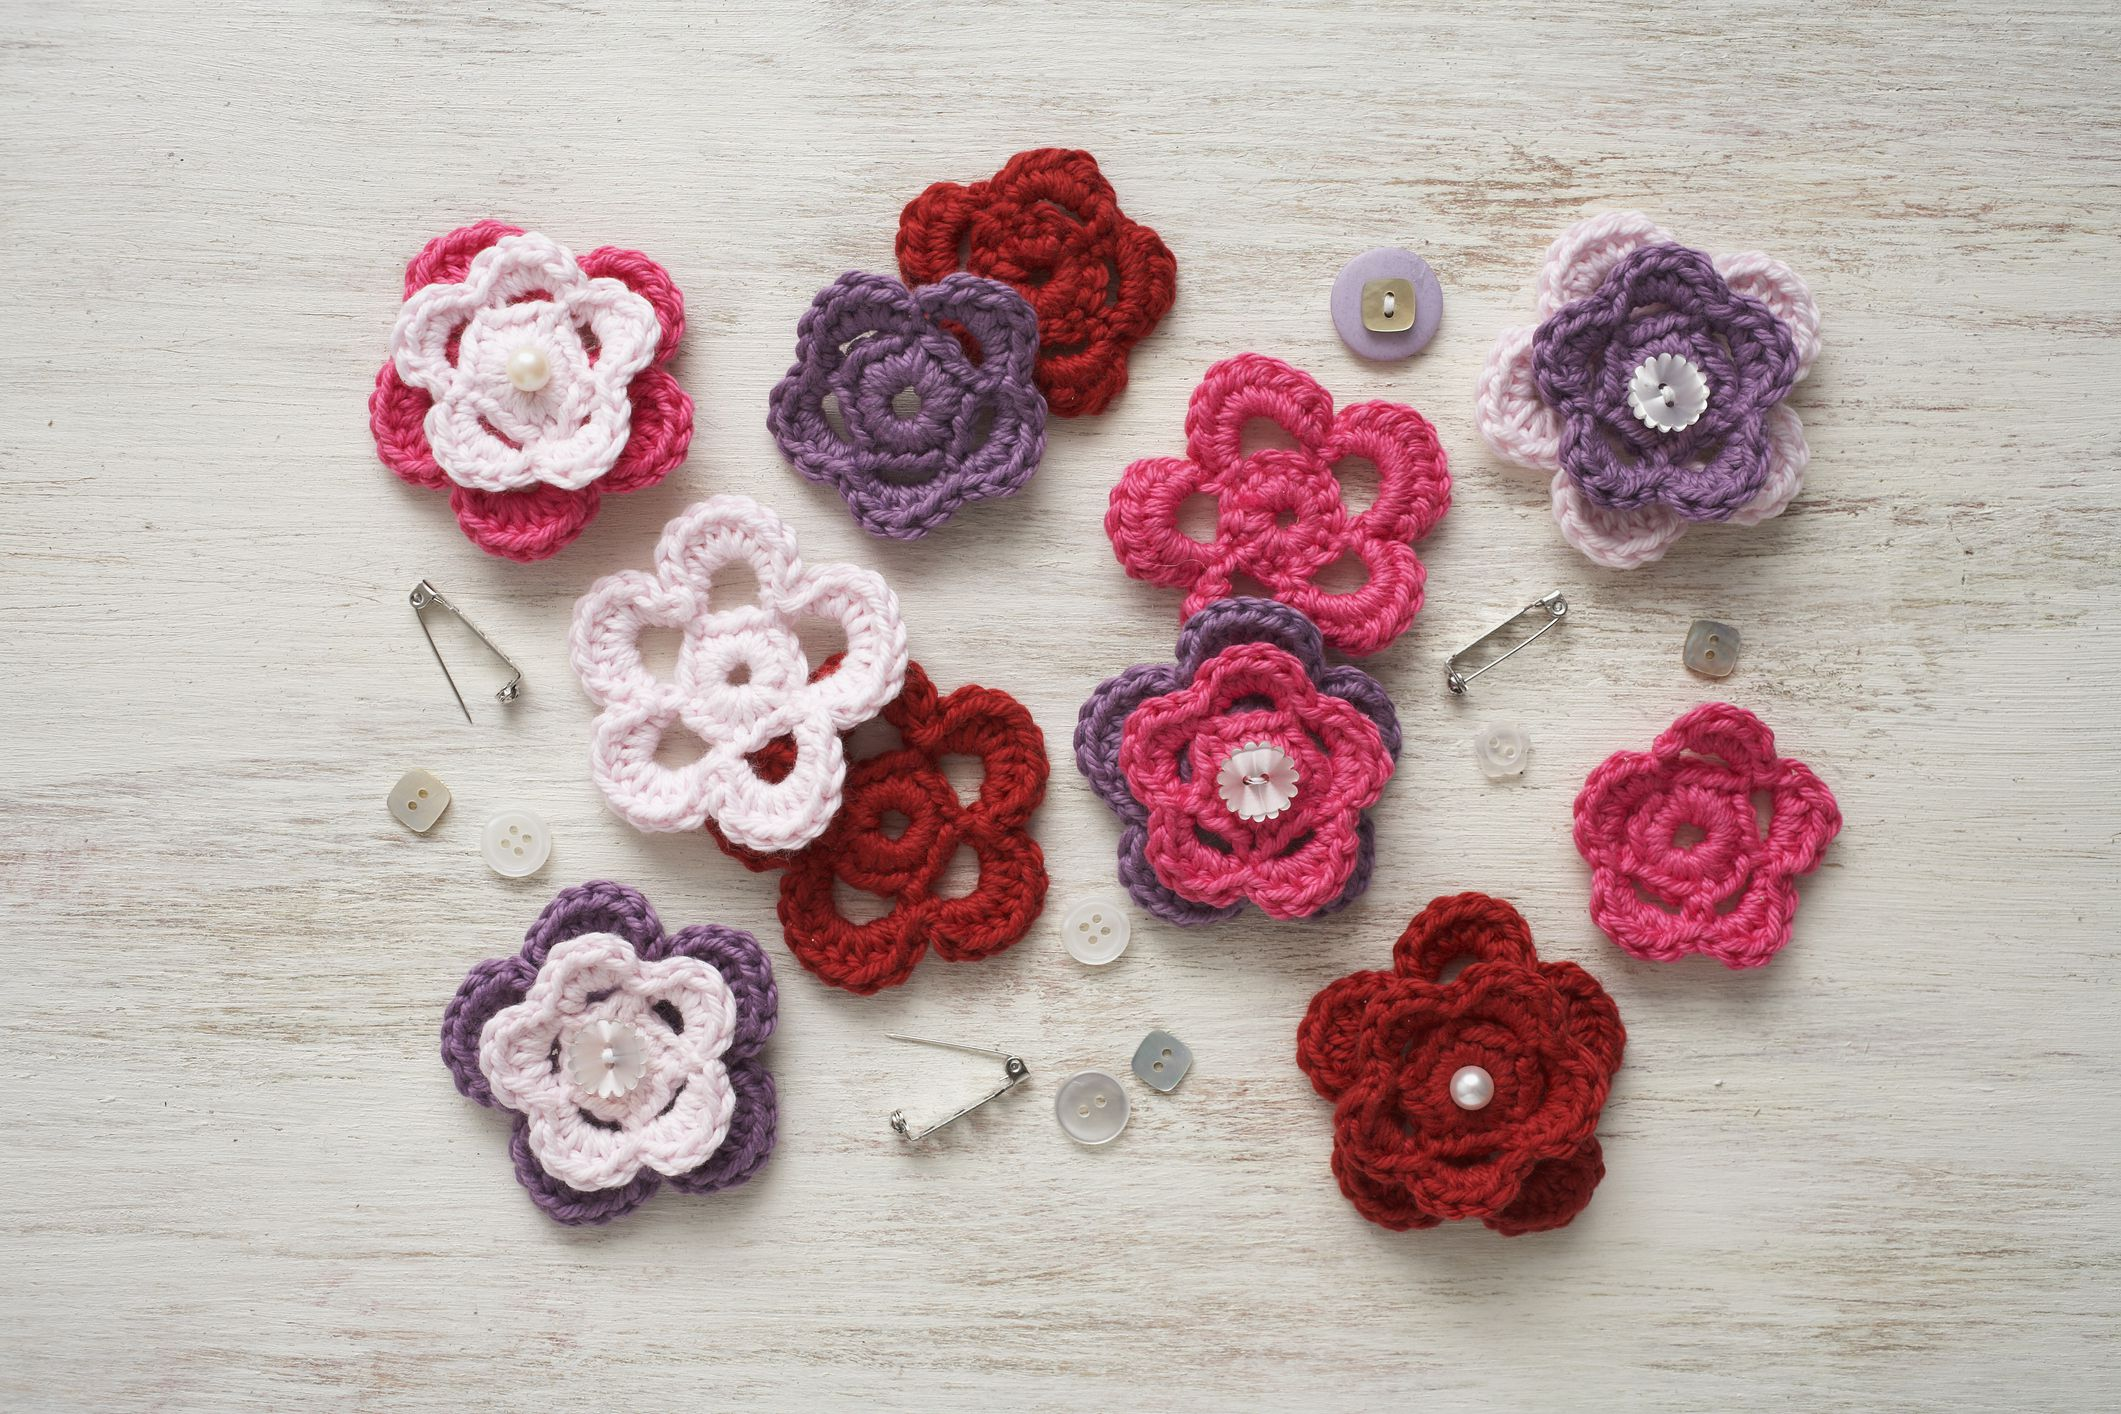 Cute Amigurumi Flowers Free Crochet Patterns | Crochet patterns ... | 1414x2121